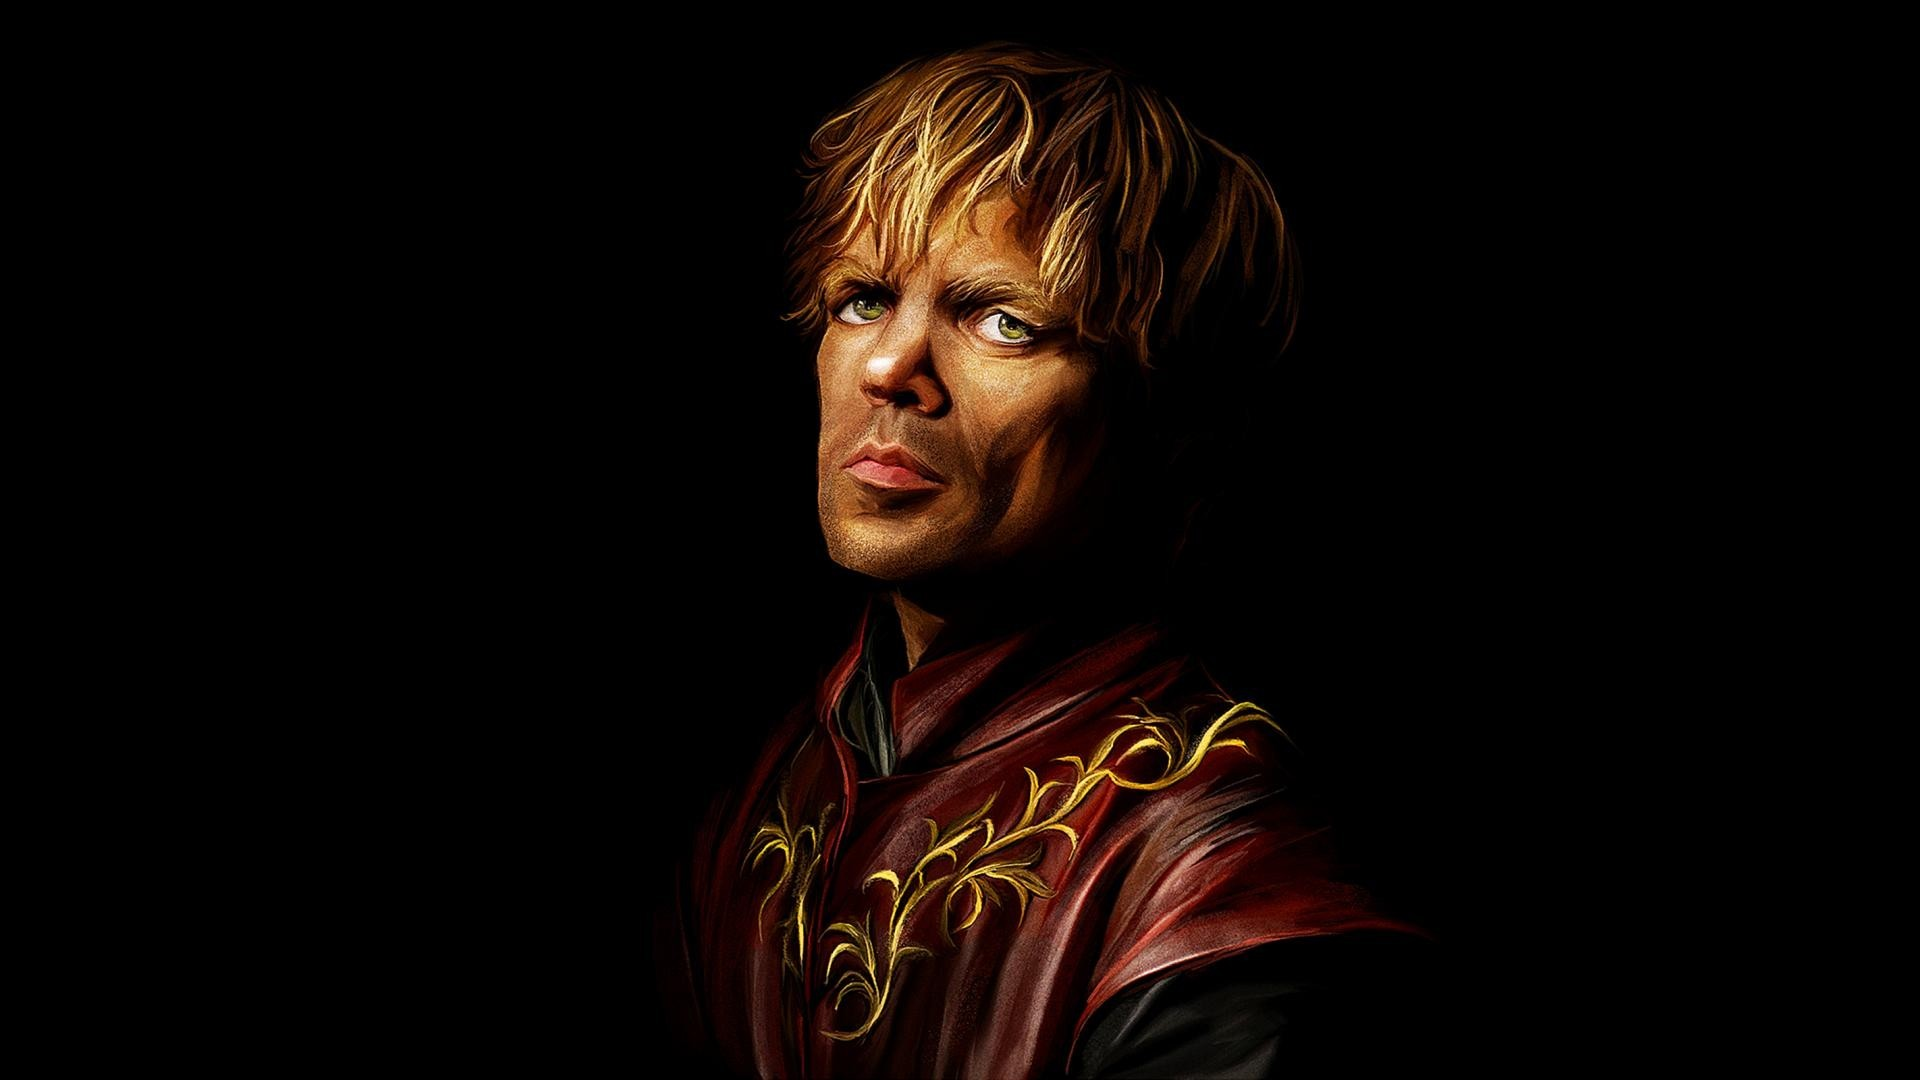 Tyrion Lannister Quotes Hd Wallpaper Wallpaper Black Background Green Eyes Artwork Game Of